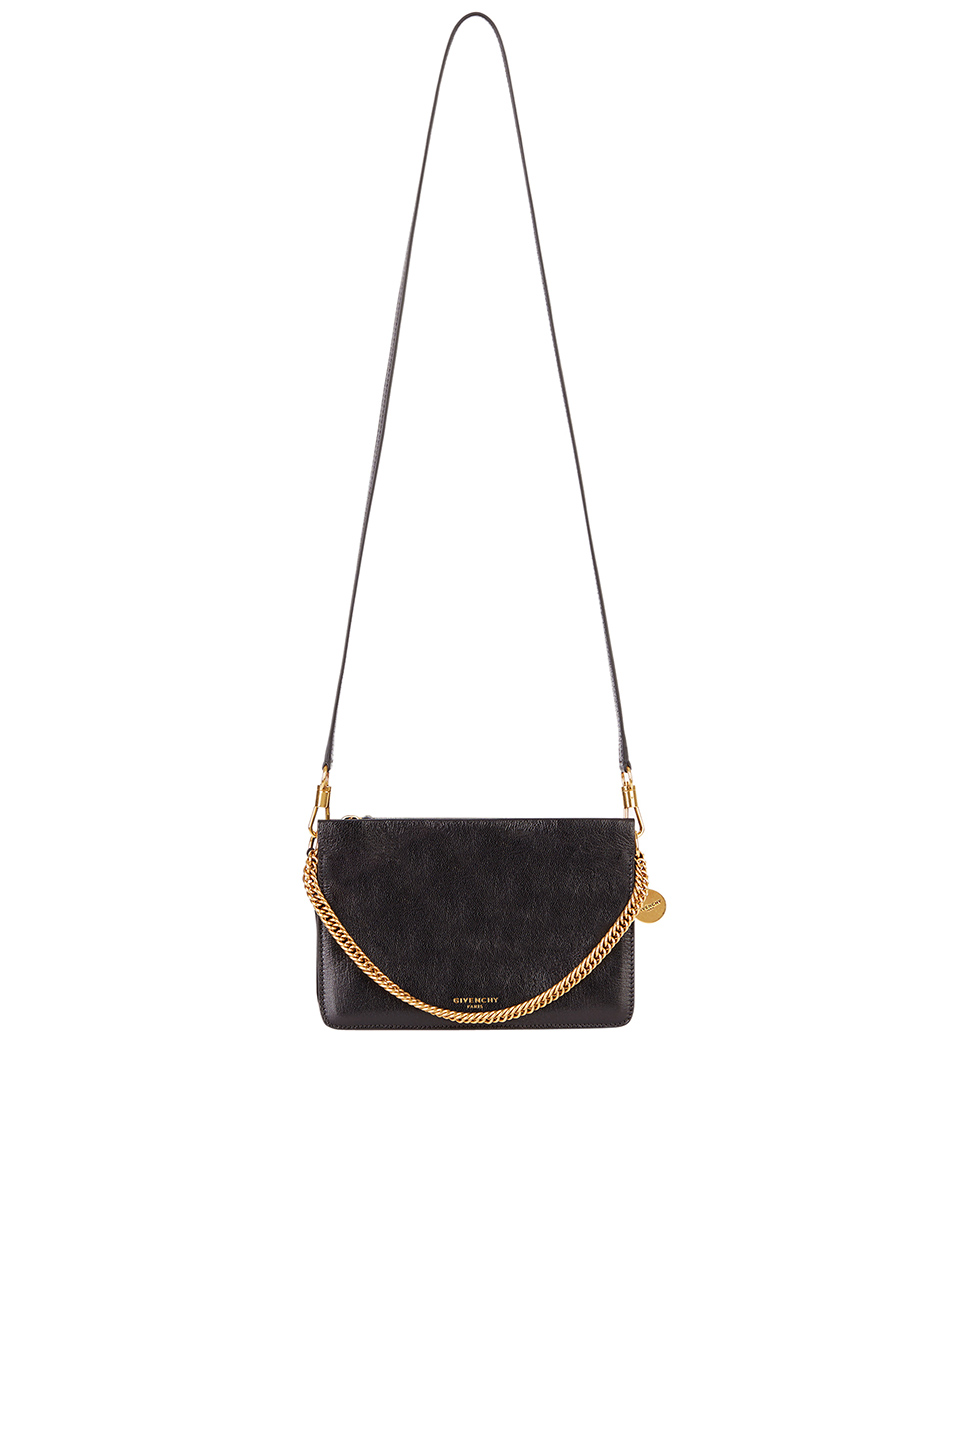 Goatskin leather with suede lining and brushed gold-tone hardware ... bca6e8c75cfec